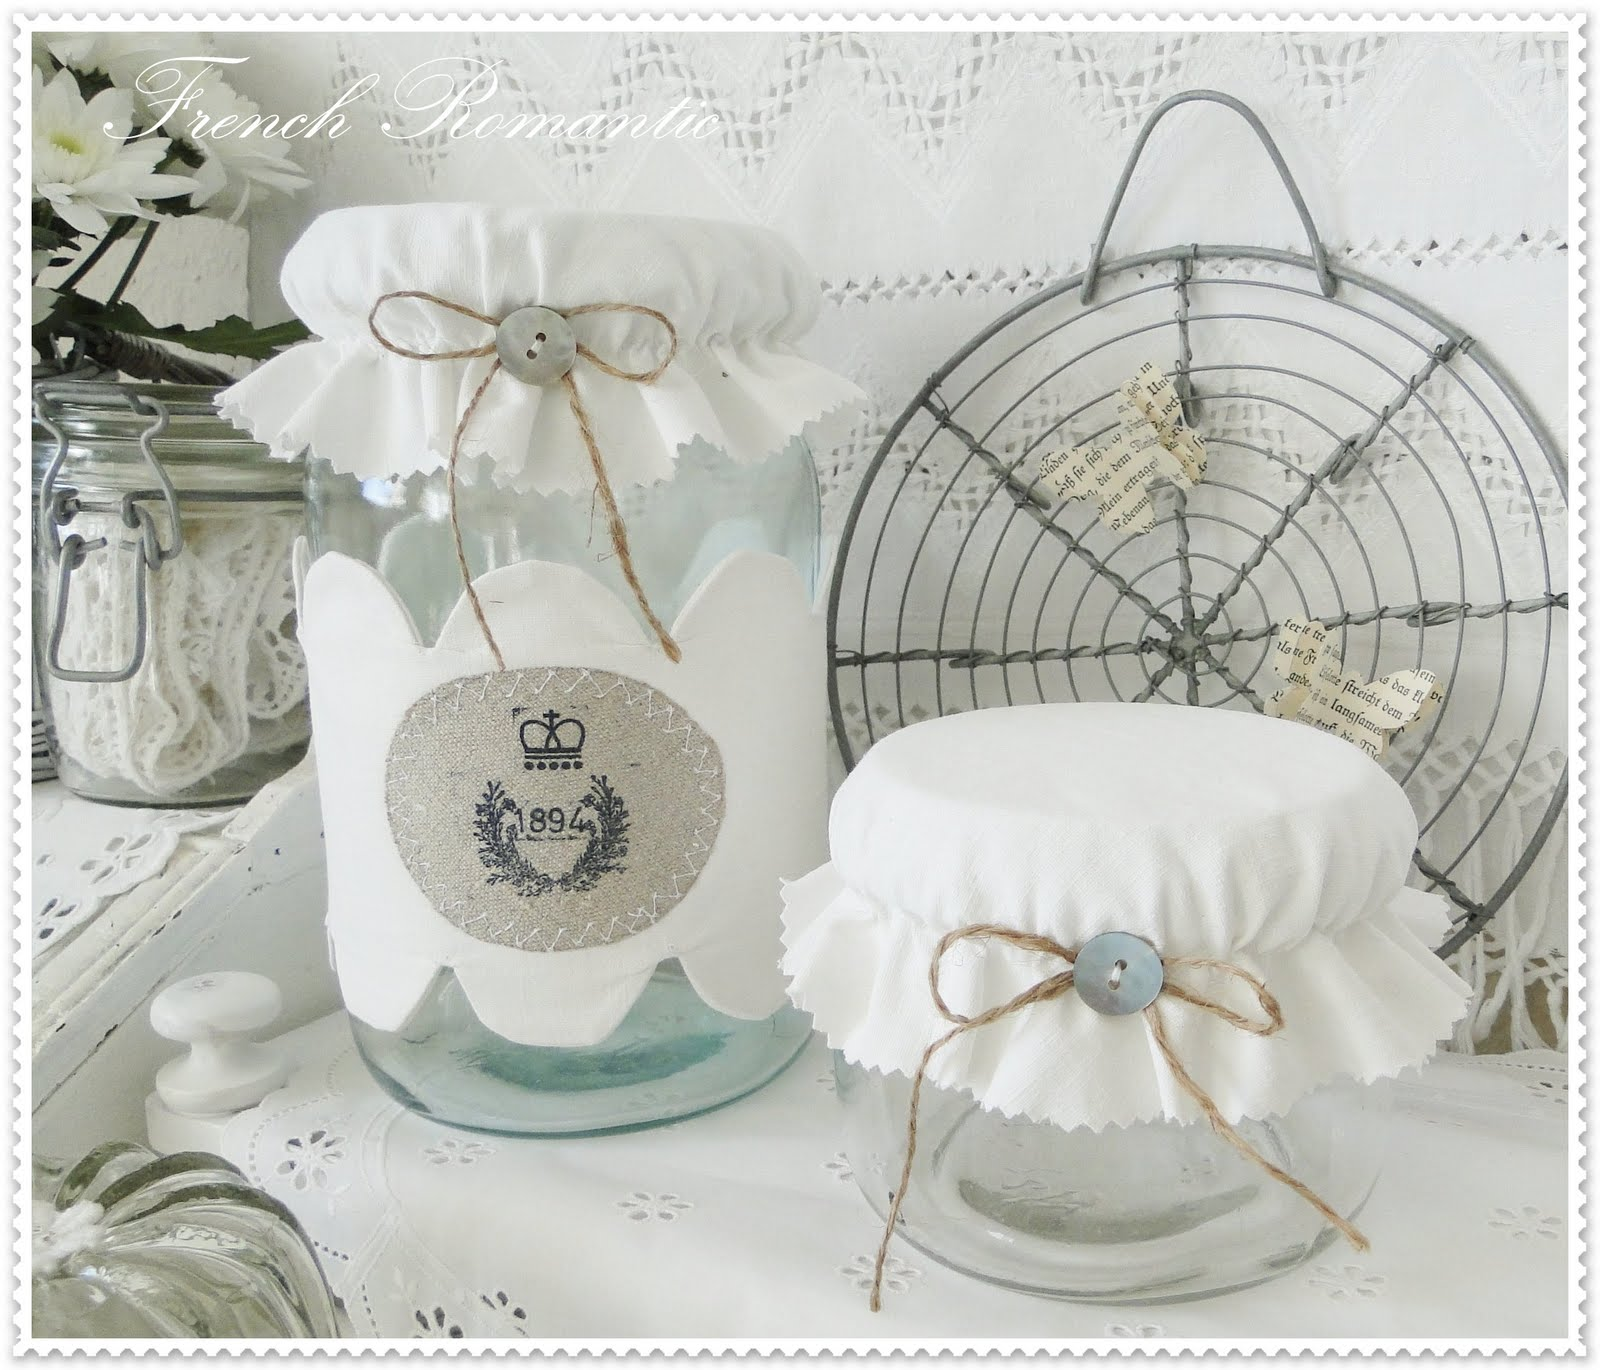 Mi baul vintage chic ideas para decorar mi blog del - Decorar baul vintage ...